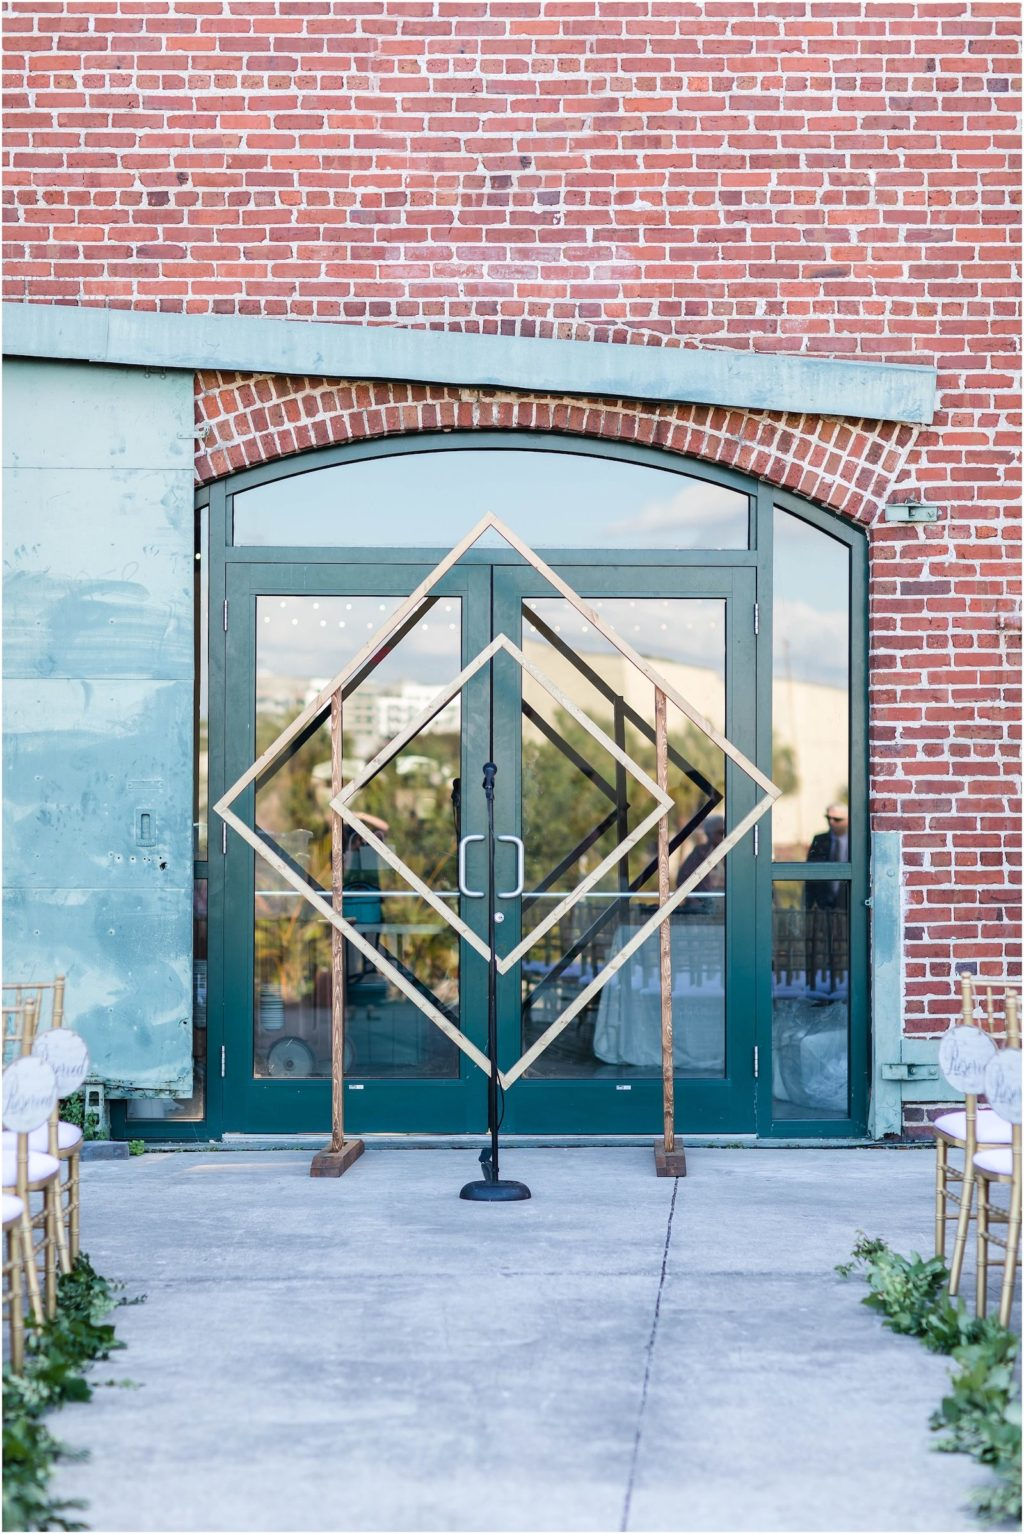 Industrial Geometric Square Wedding Arch Backdrop with Historic Brick Wall Building